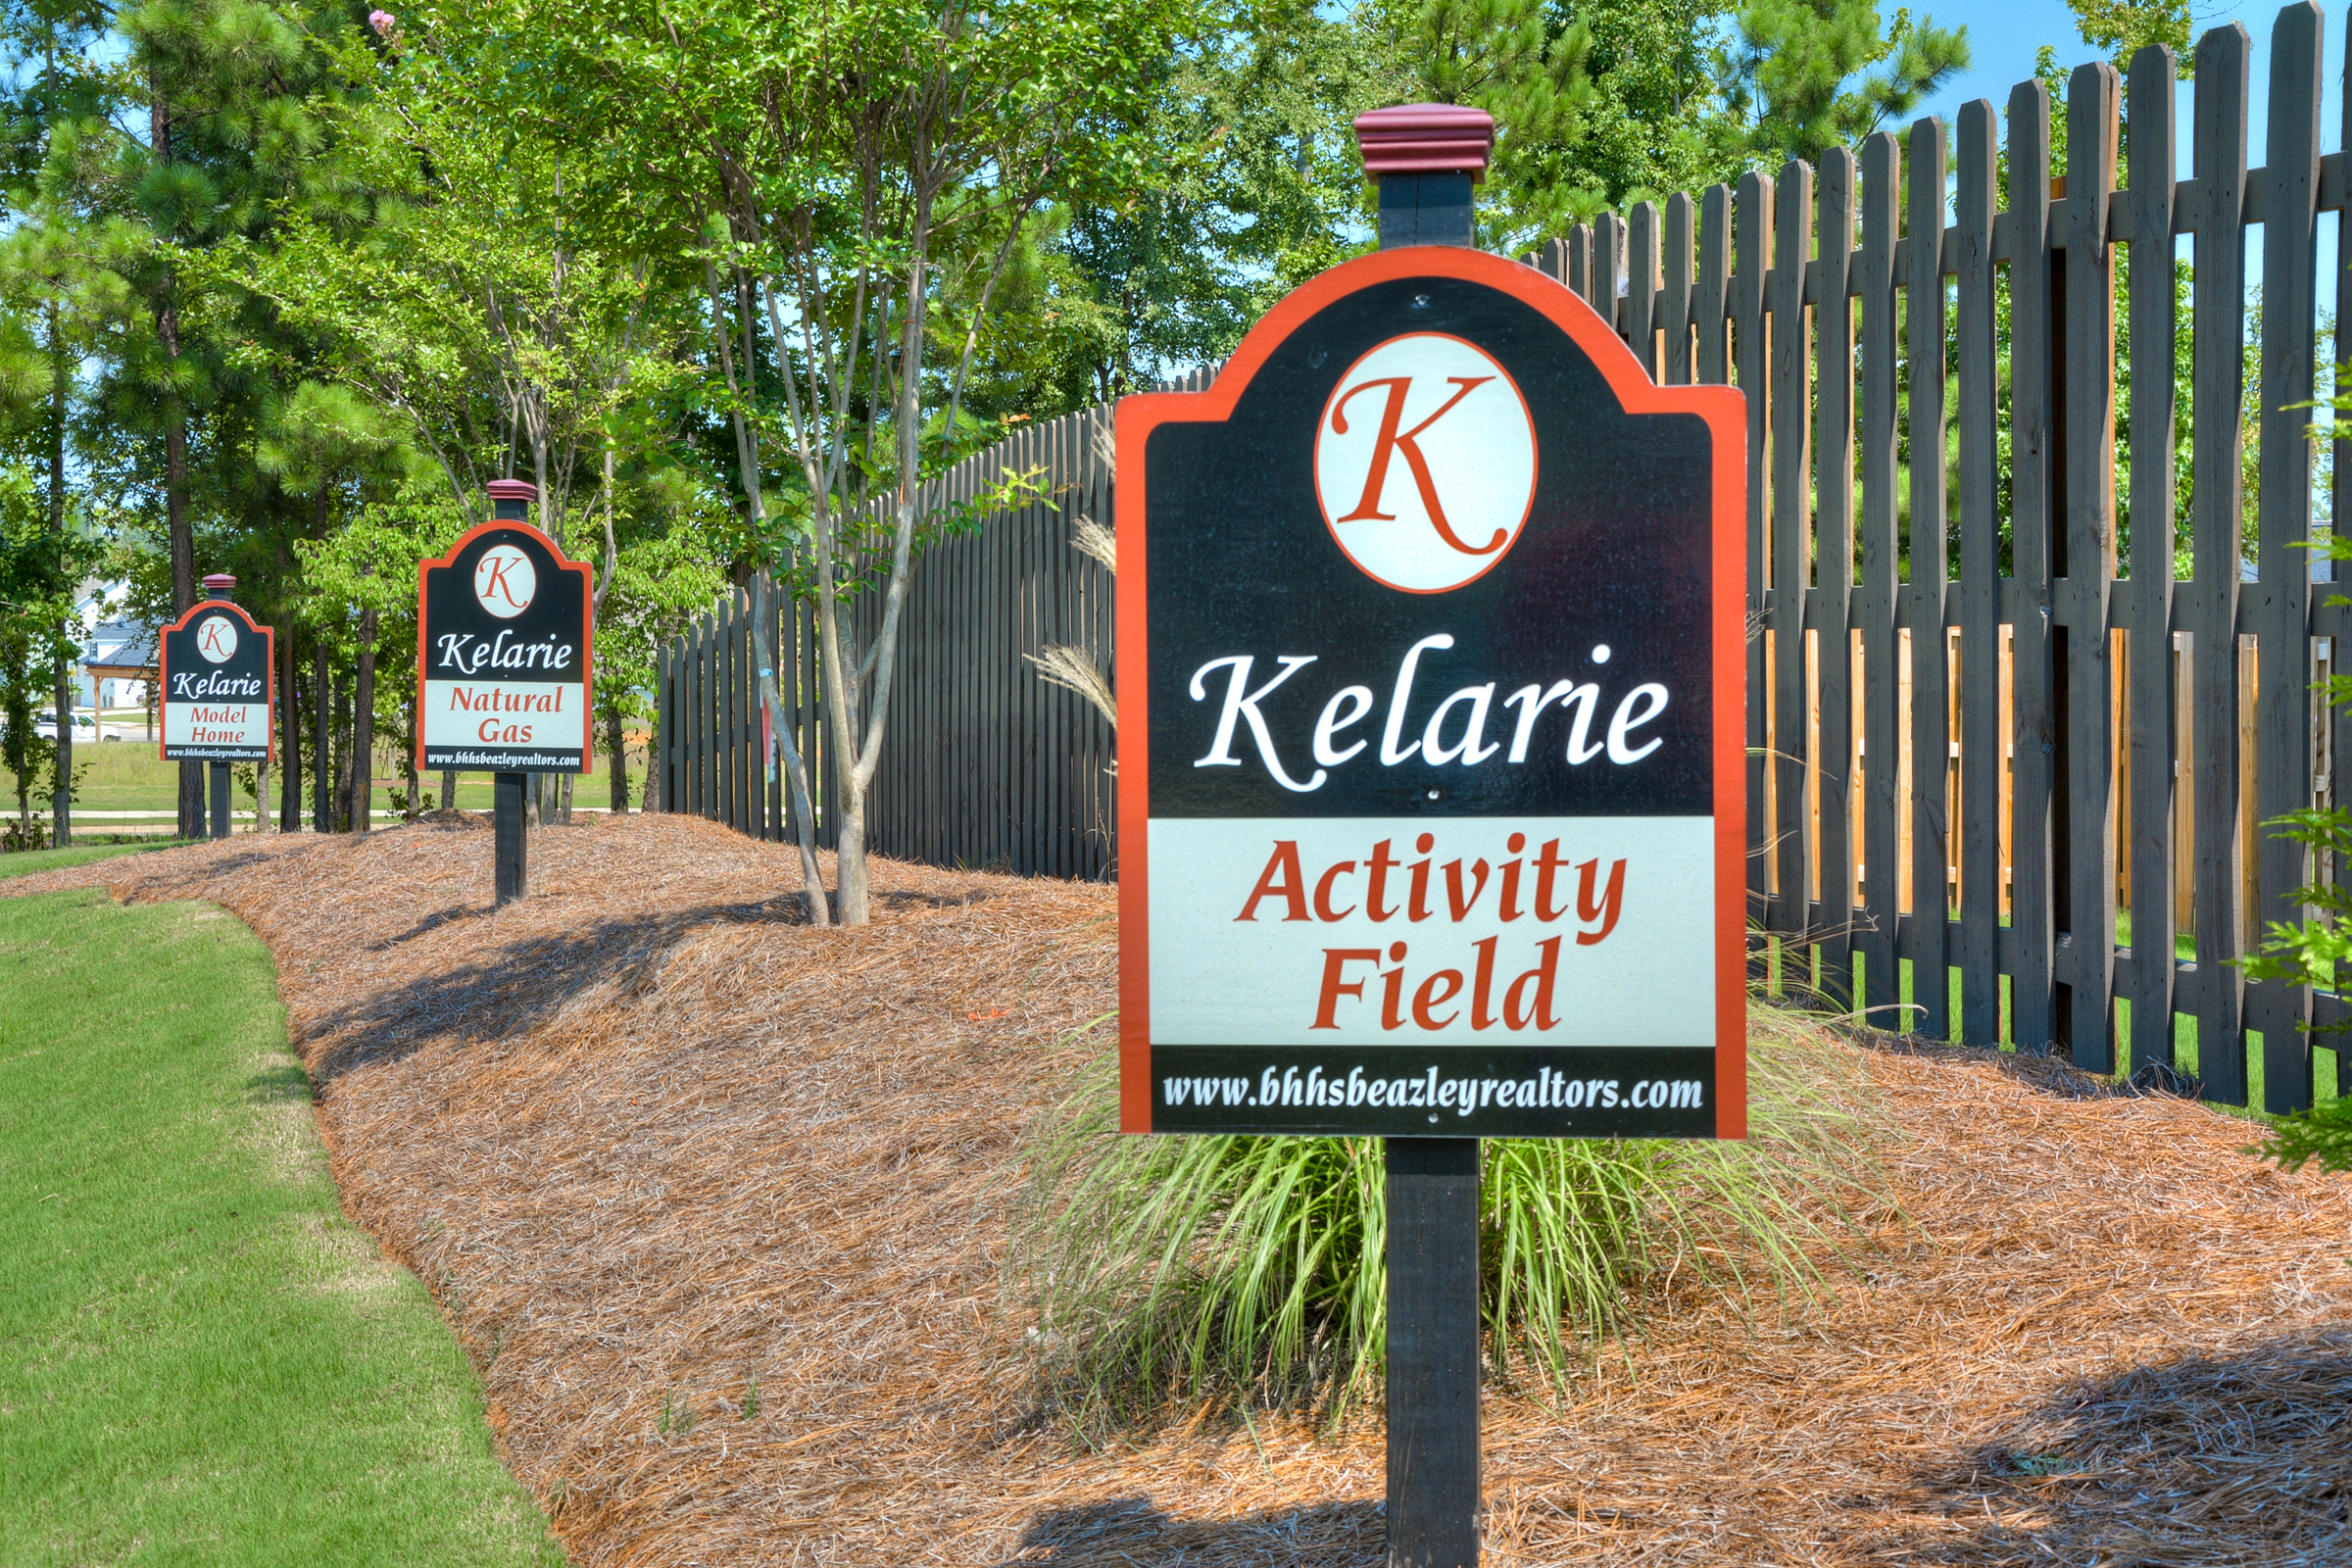 An image of the Kelarie Amenity signs.